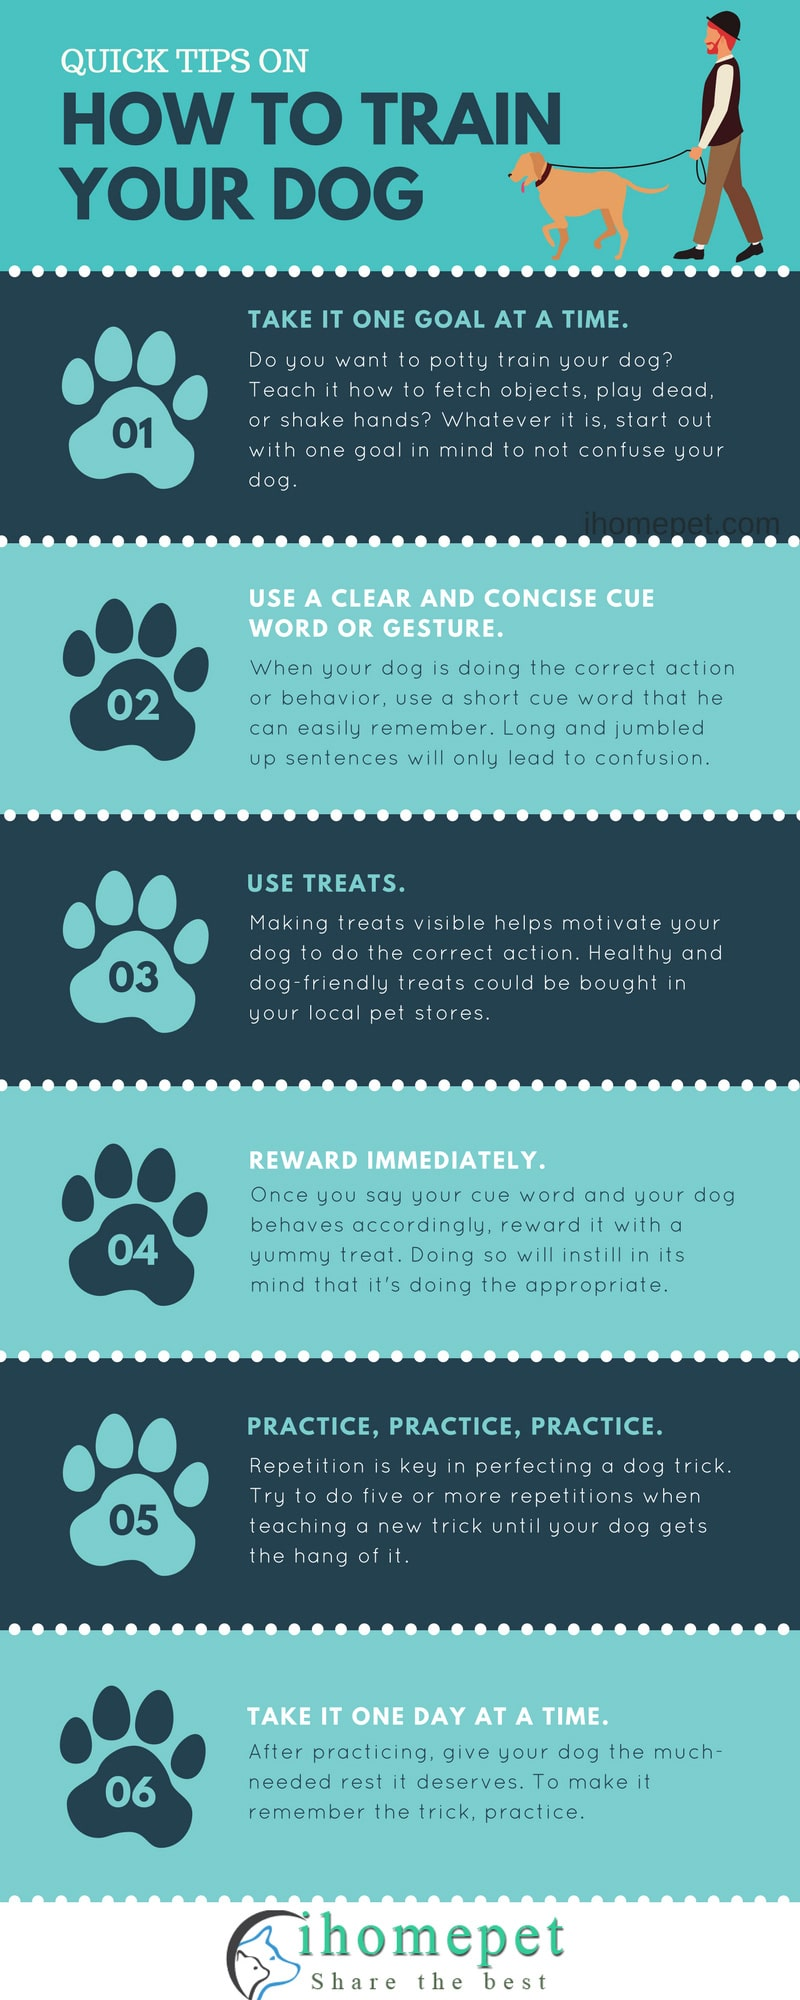 Top Proven Quick Tips on How to Train Your Dog